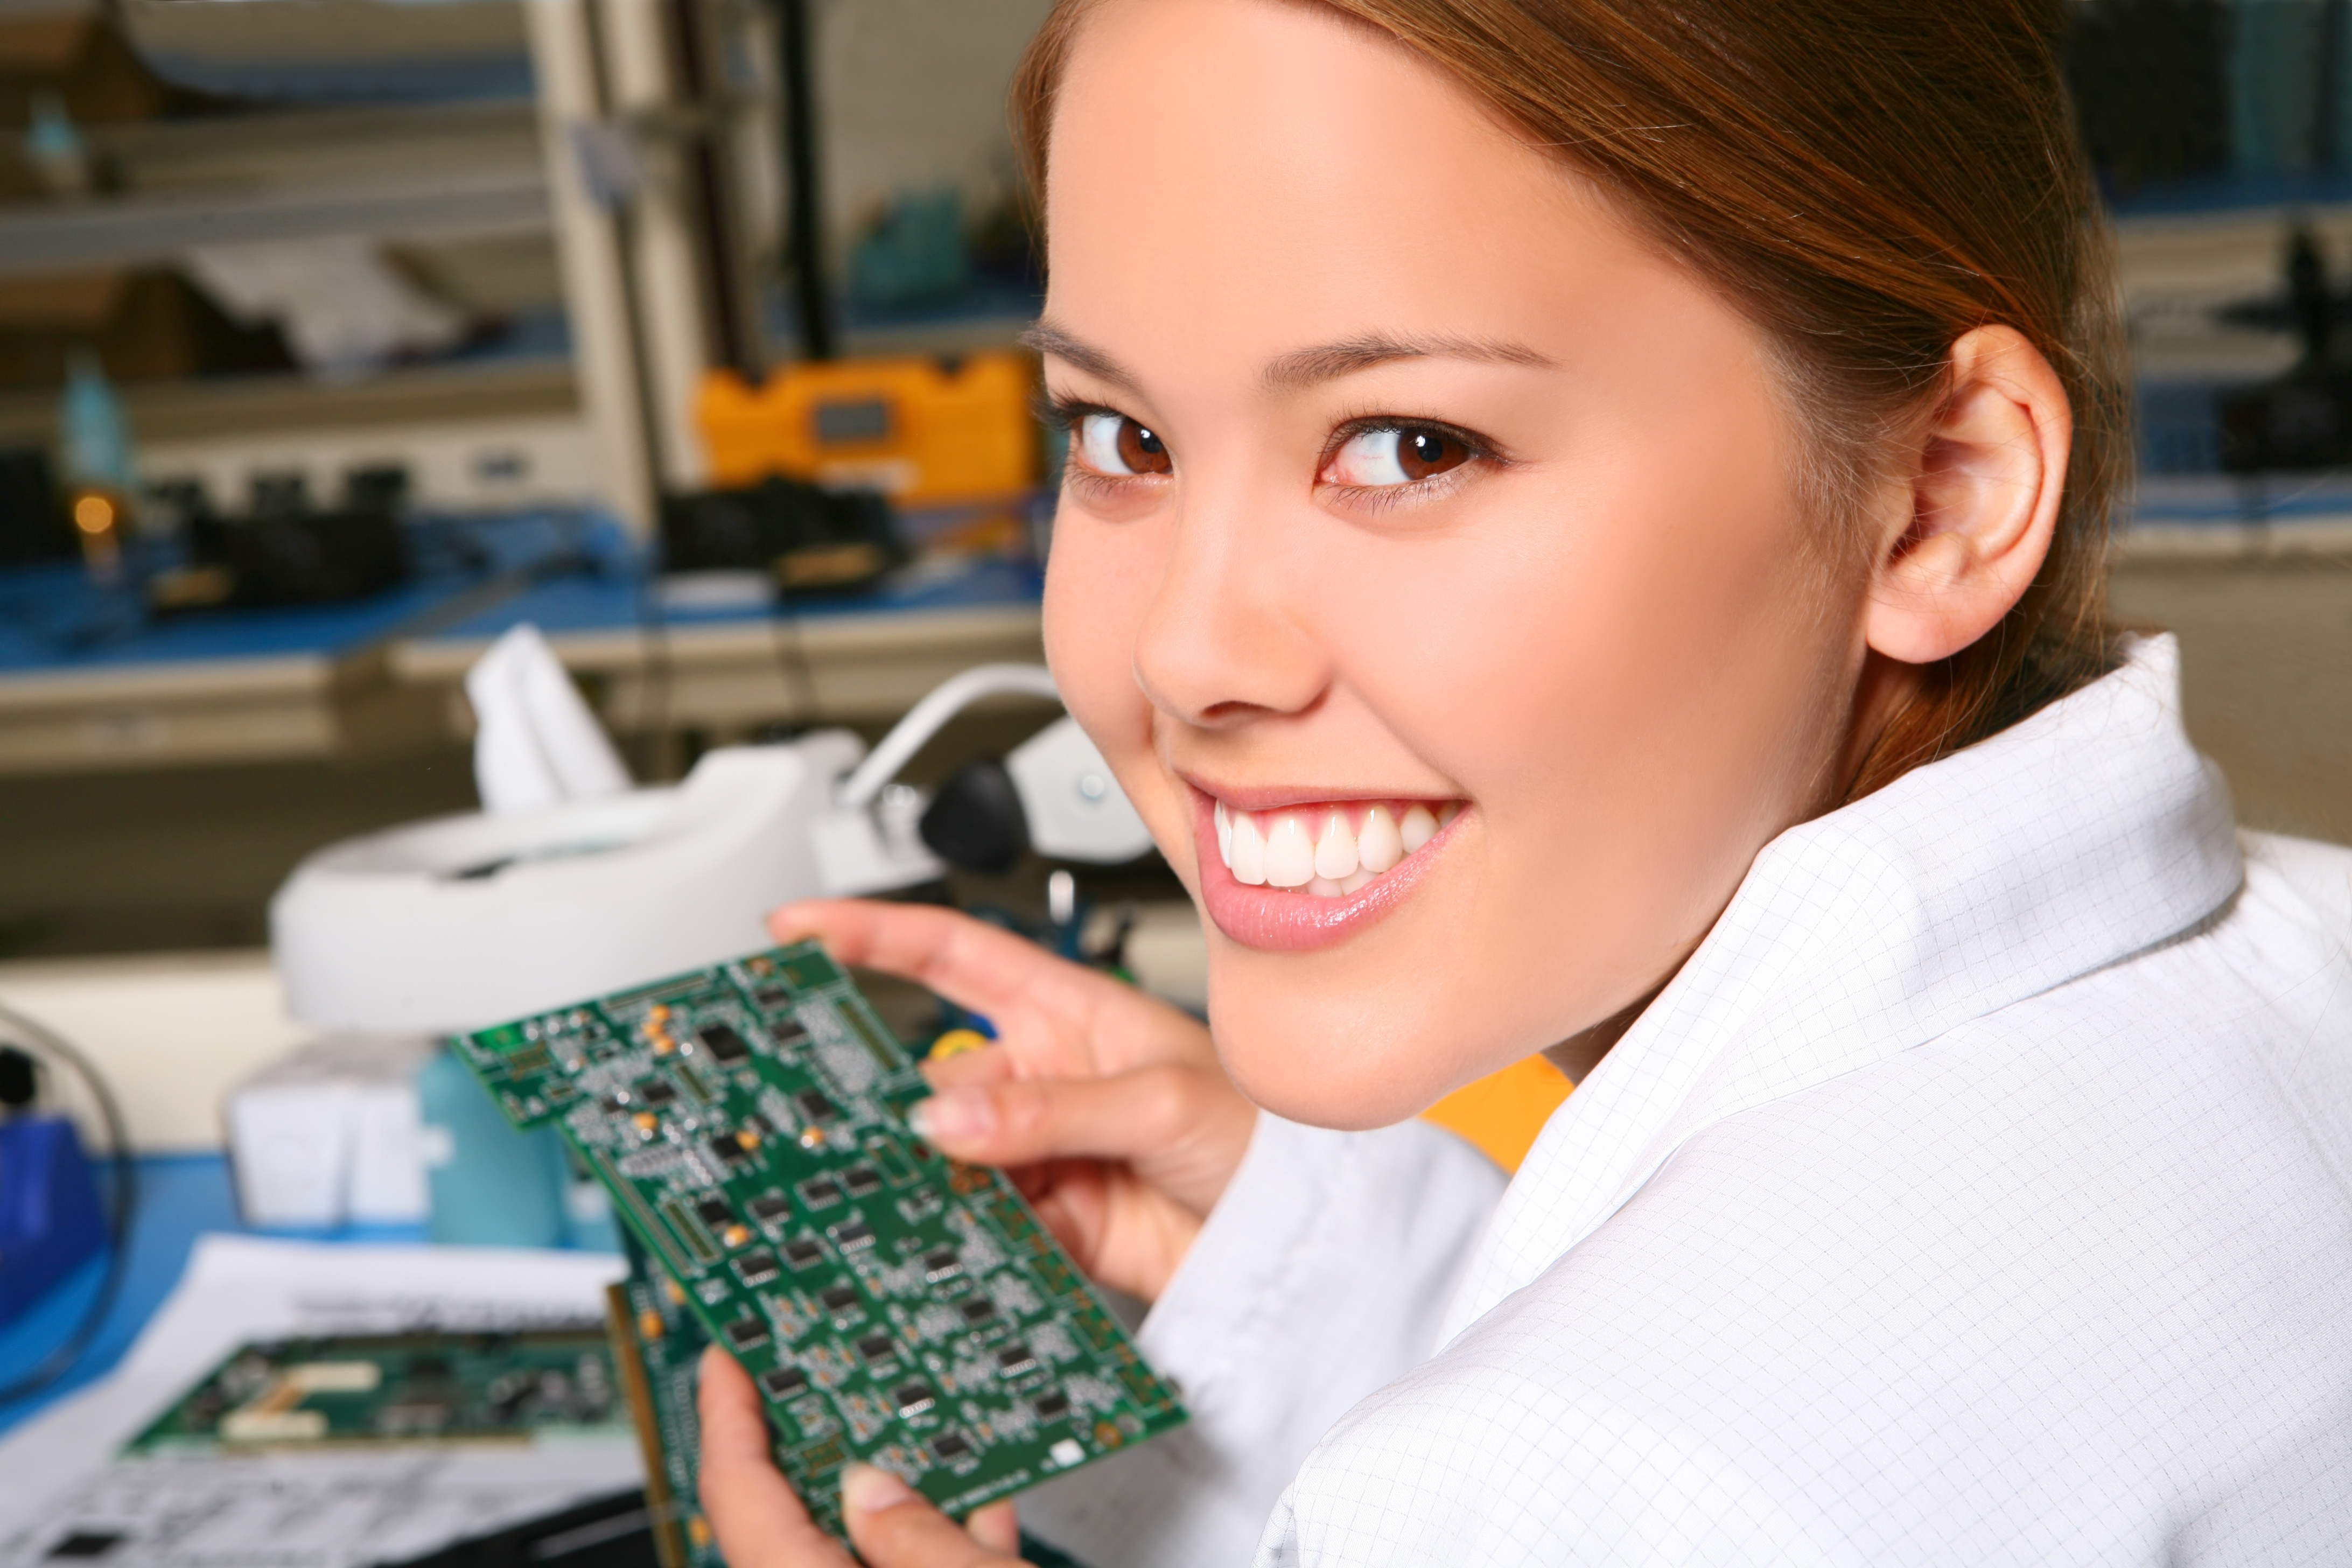 Woman and Circuit Board Curriculum Theory and Evidence